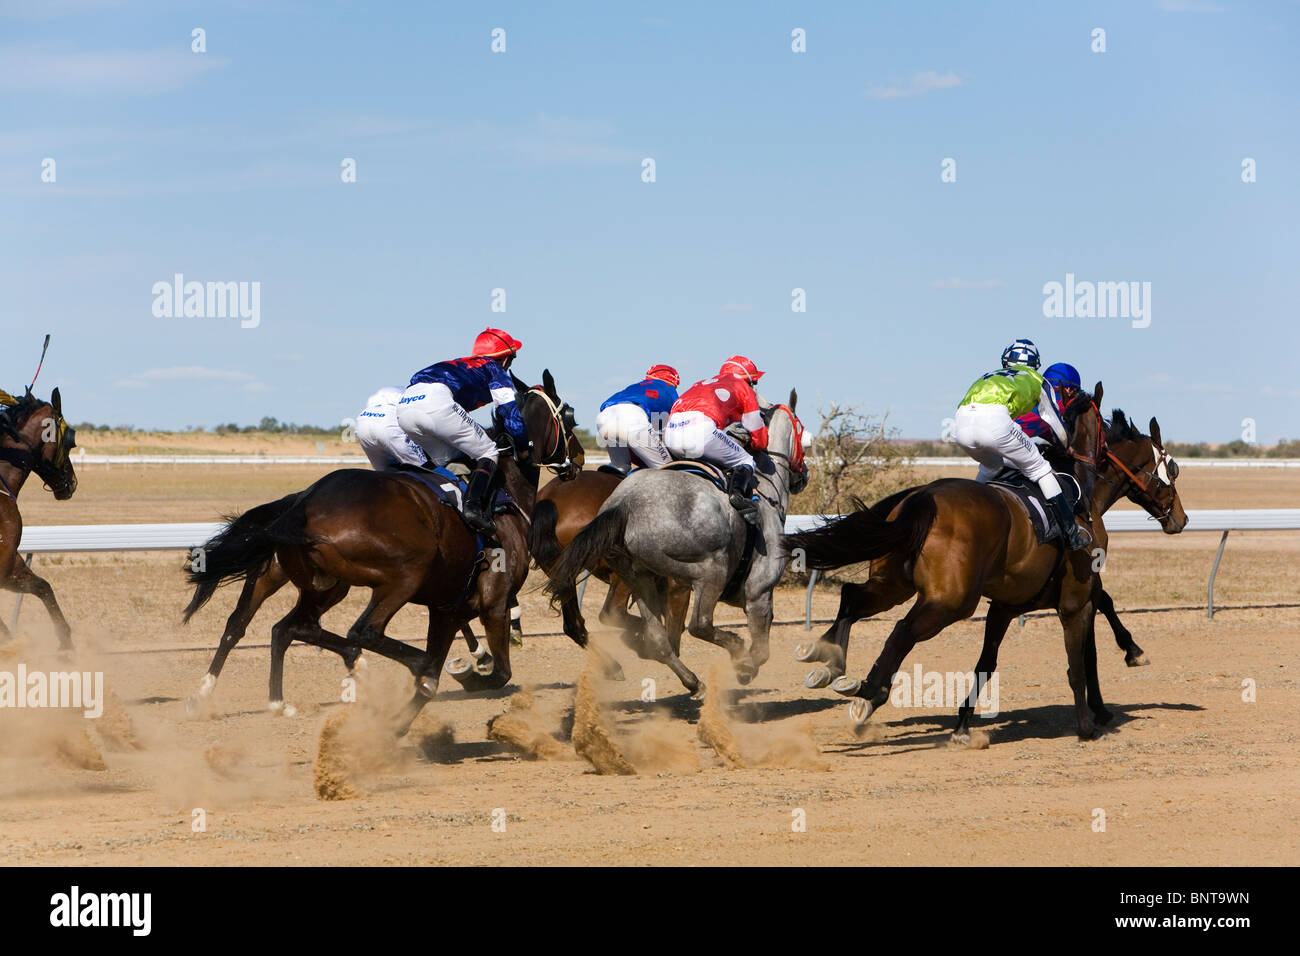 Horse racing in the outback at the Birdsville Cup Races. - Stock Image